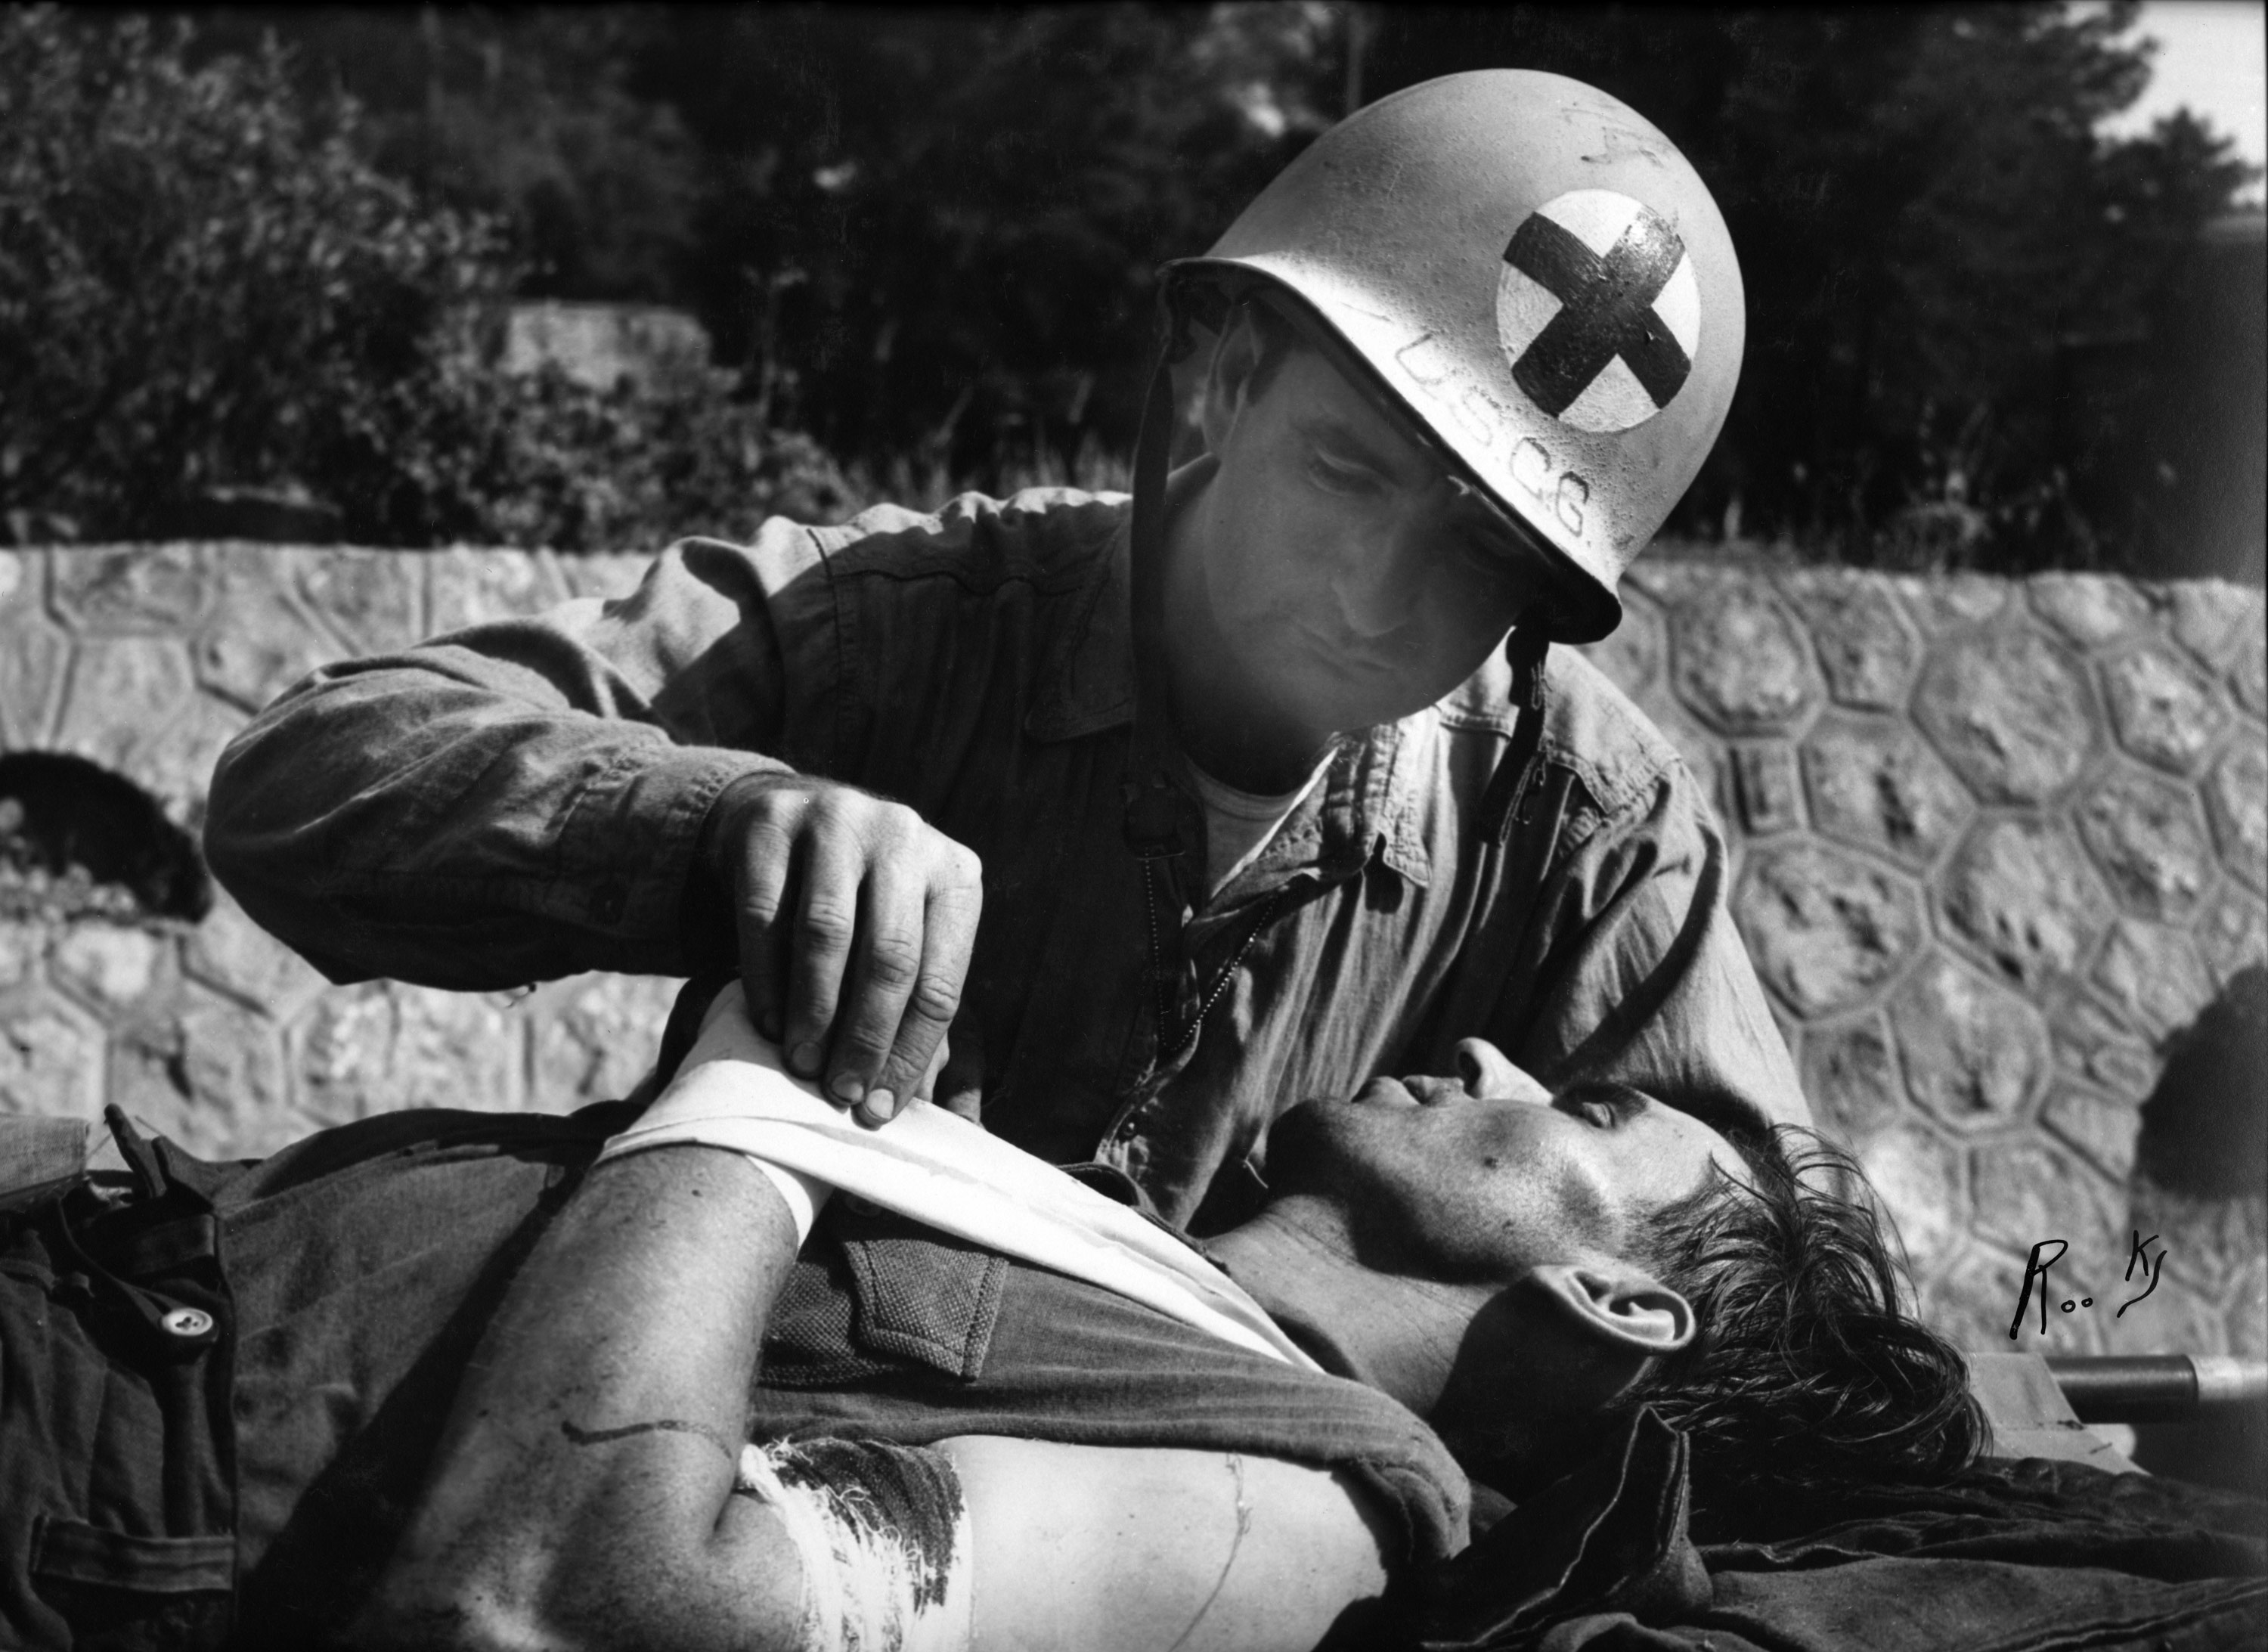 Ph. M. Baker treating wounded German captive